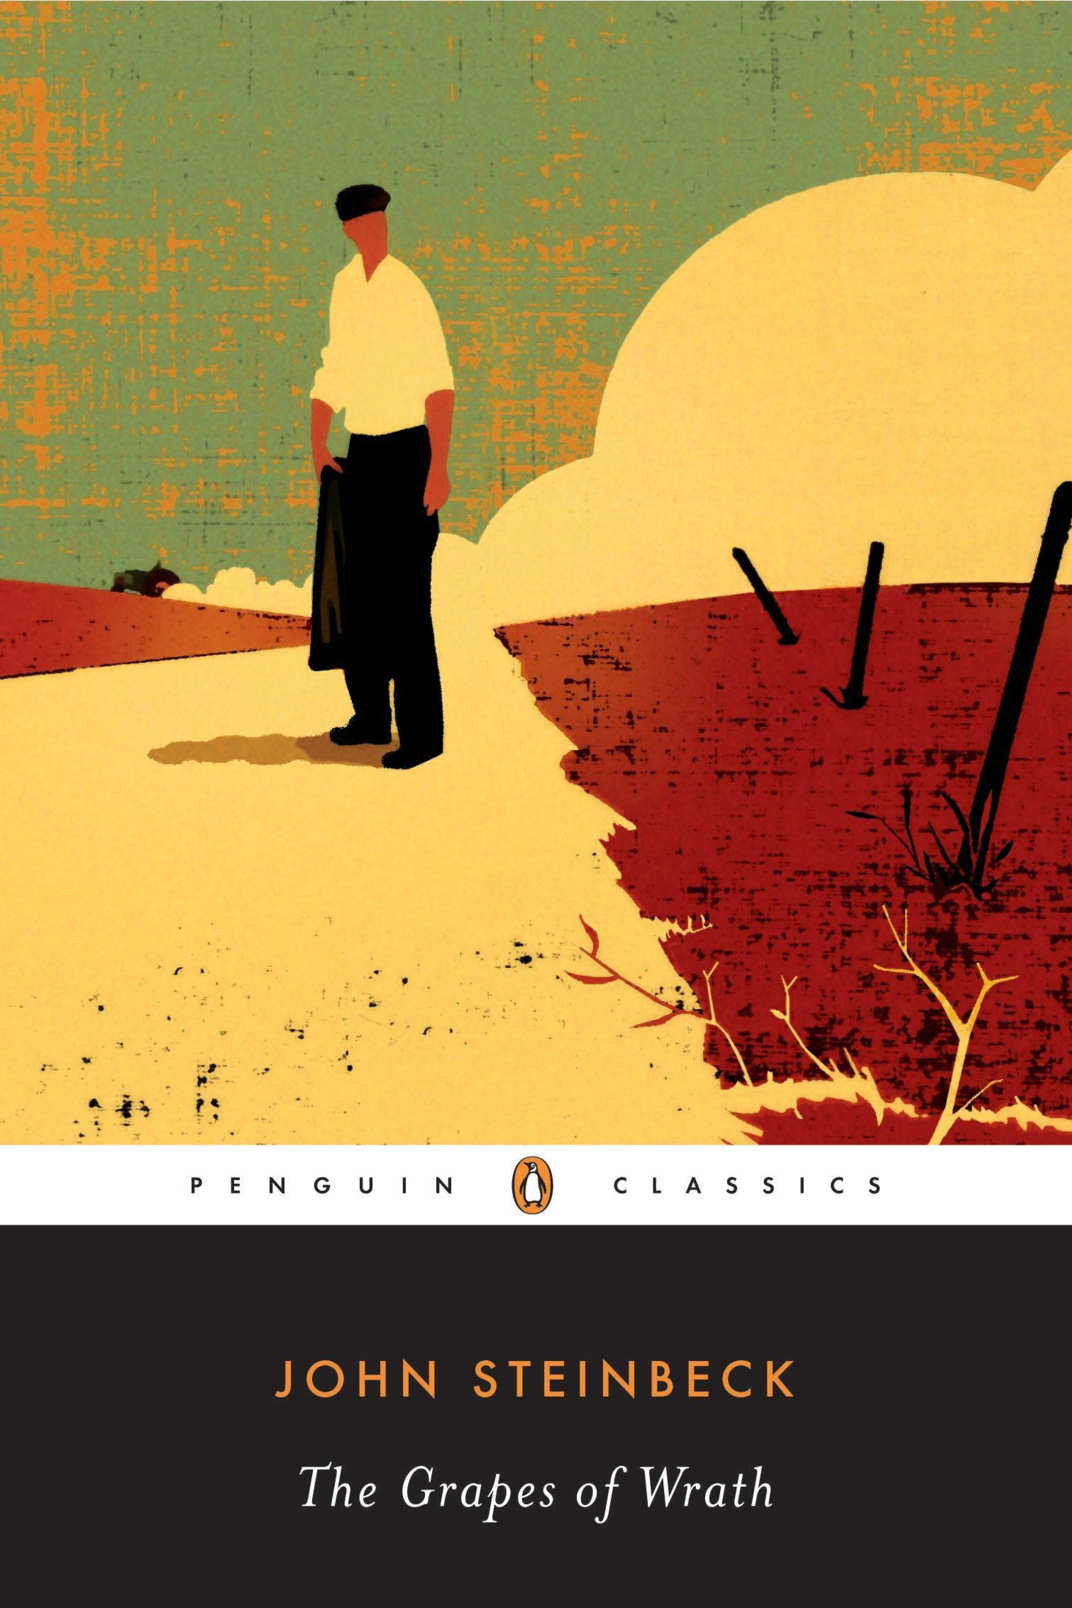 <em>The Grapes of Wrath</em> by John Steinbeck